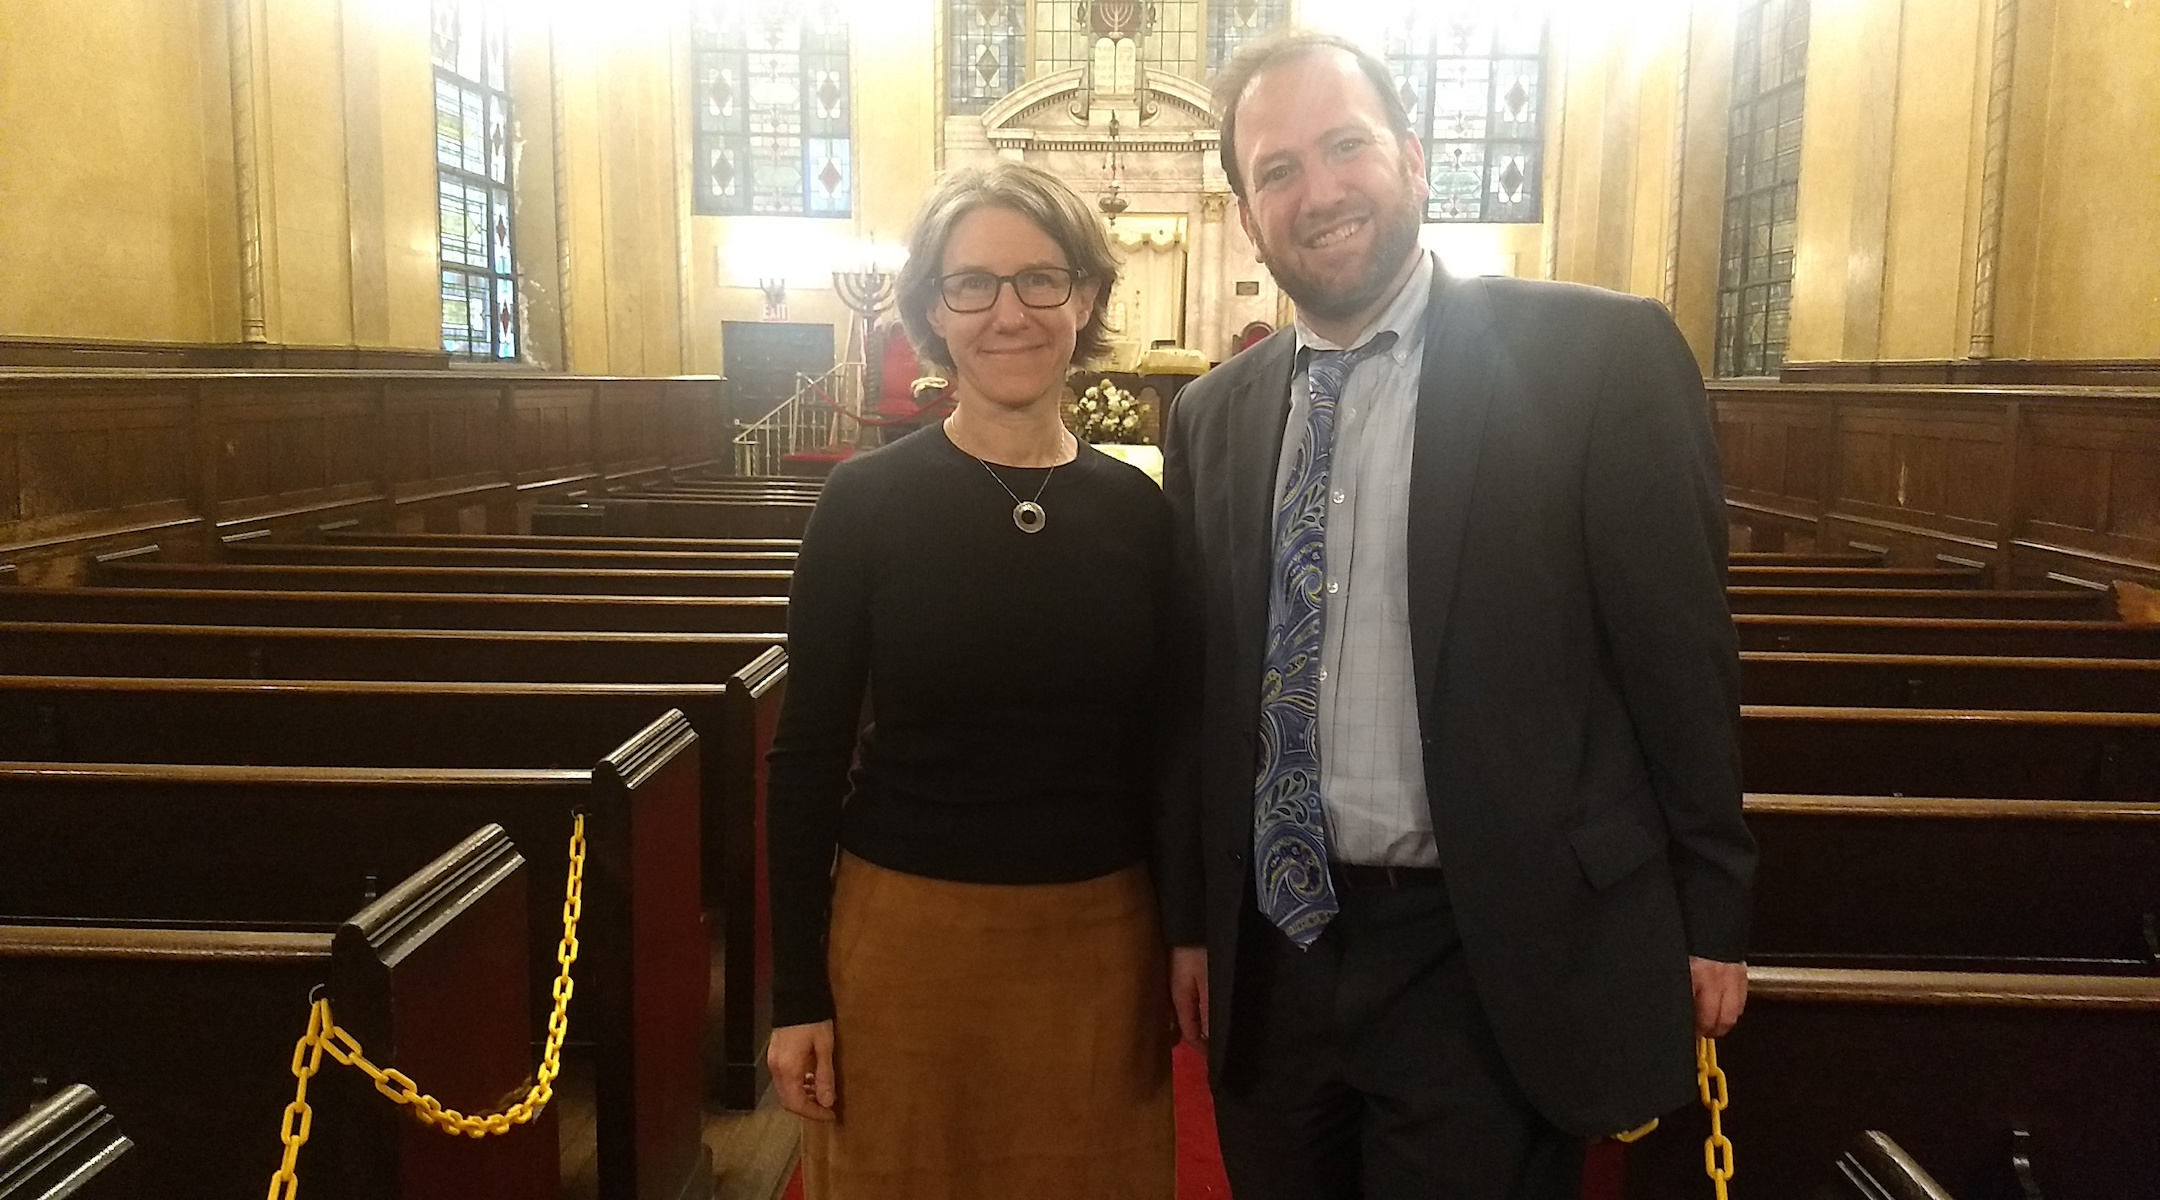 Rabbi Jason Herman and architect Esther Sperber stand in the sanctuary of the West Side Jewish Center. (Ben Sales)